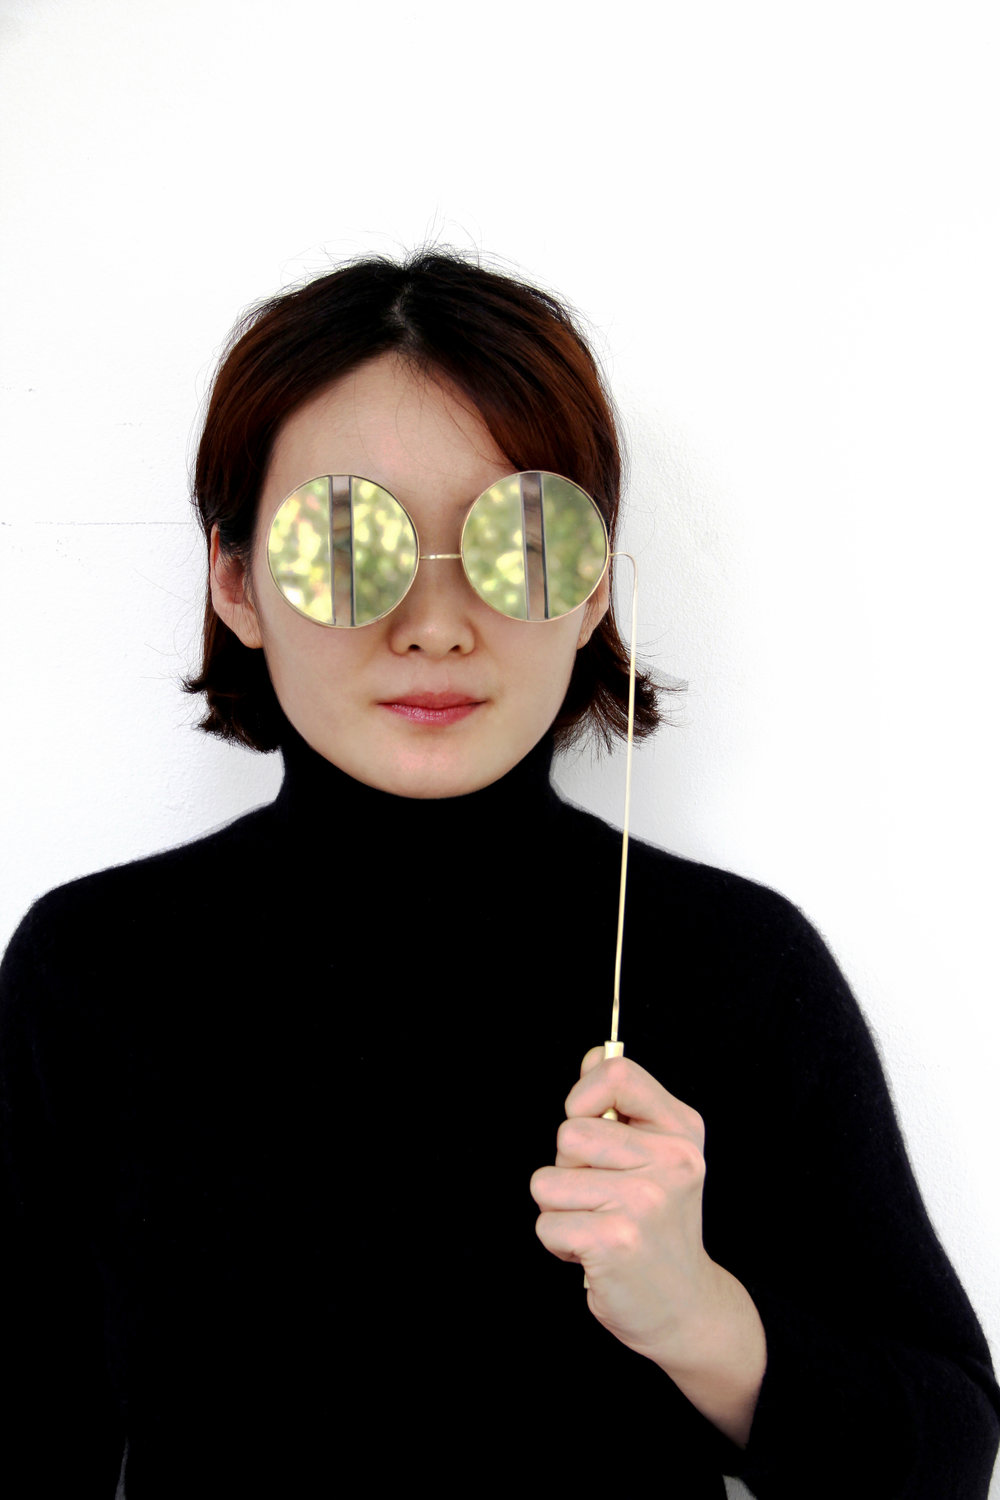 "Photography: Yi Cao. Model: Wanshu Li.  ""Deep Sight "" Mirror&Transparent acrylic, Brass, Pressed Sponge. 2016. Inspiration for this pair of glasses came from the classic theatre glasses and opera binoculars from earlier times. The size of the lenses was stretched and shaped into a stripe as seen in the piece. In addition to this the mirror-like acrylic sheet narrowed the viewpoint. The piece intentionally distorts vision, leaving the user more space and time for further pondering and reflection in the dramatic and sometimes chaotic atmosphere."